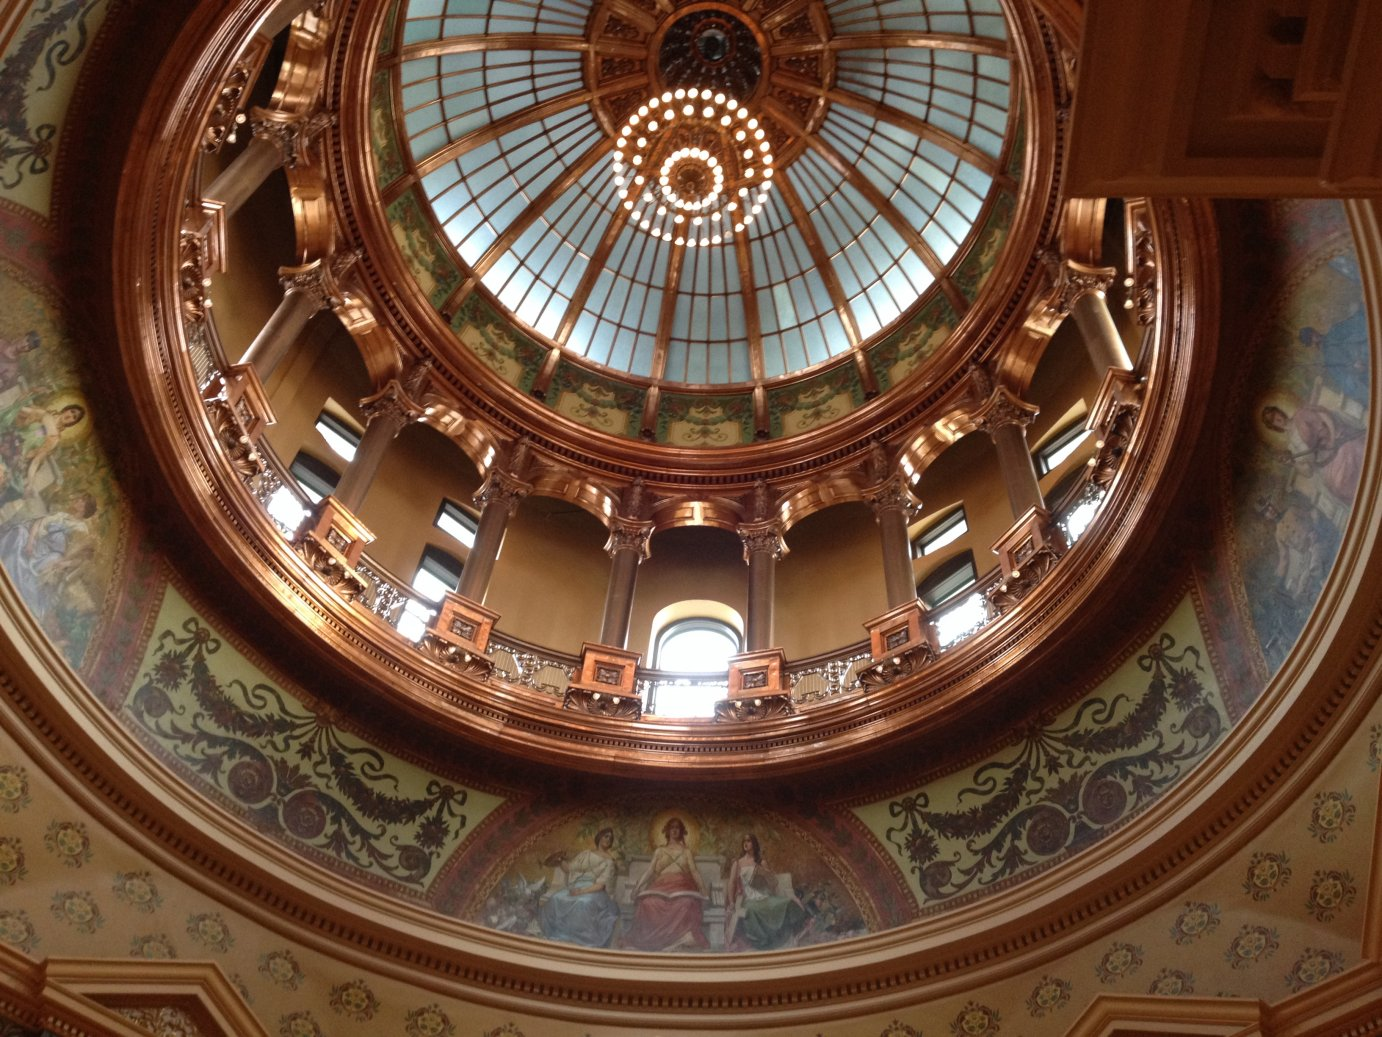 Inside the Kansas Statehouse rotunda, looking up inside the inner dome. (Photo by J. Schafer)